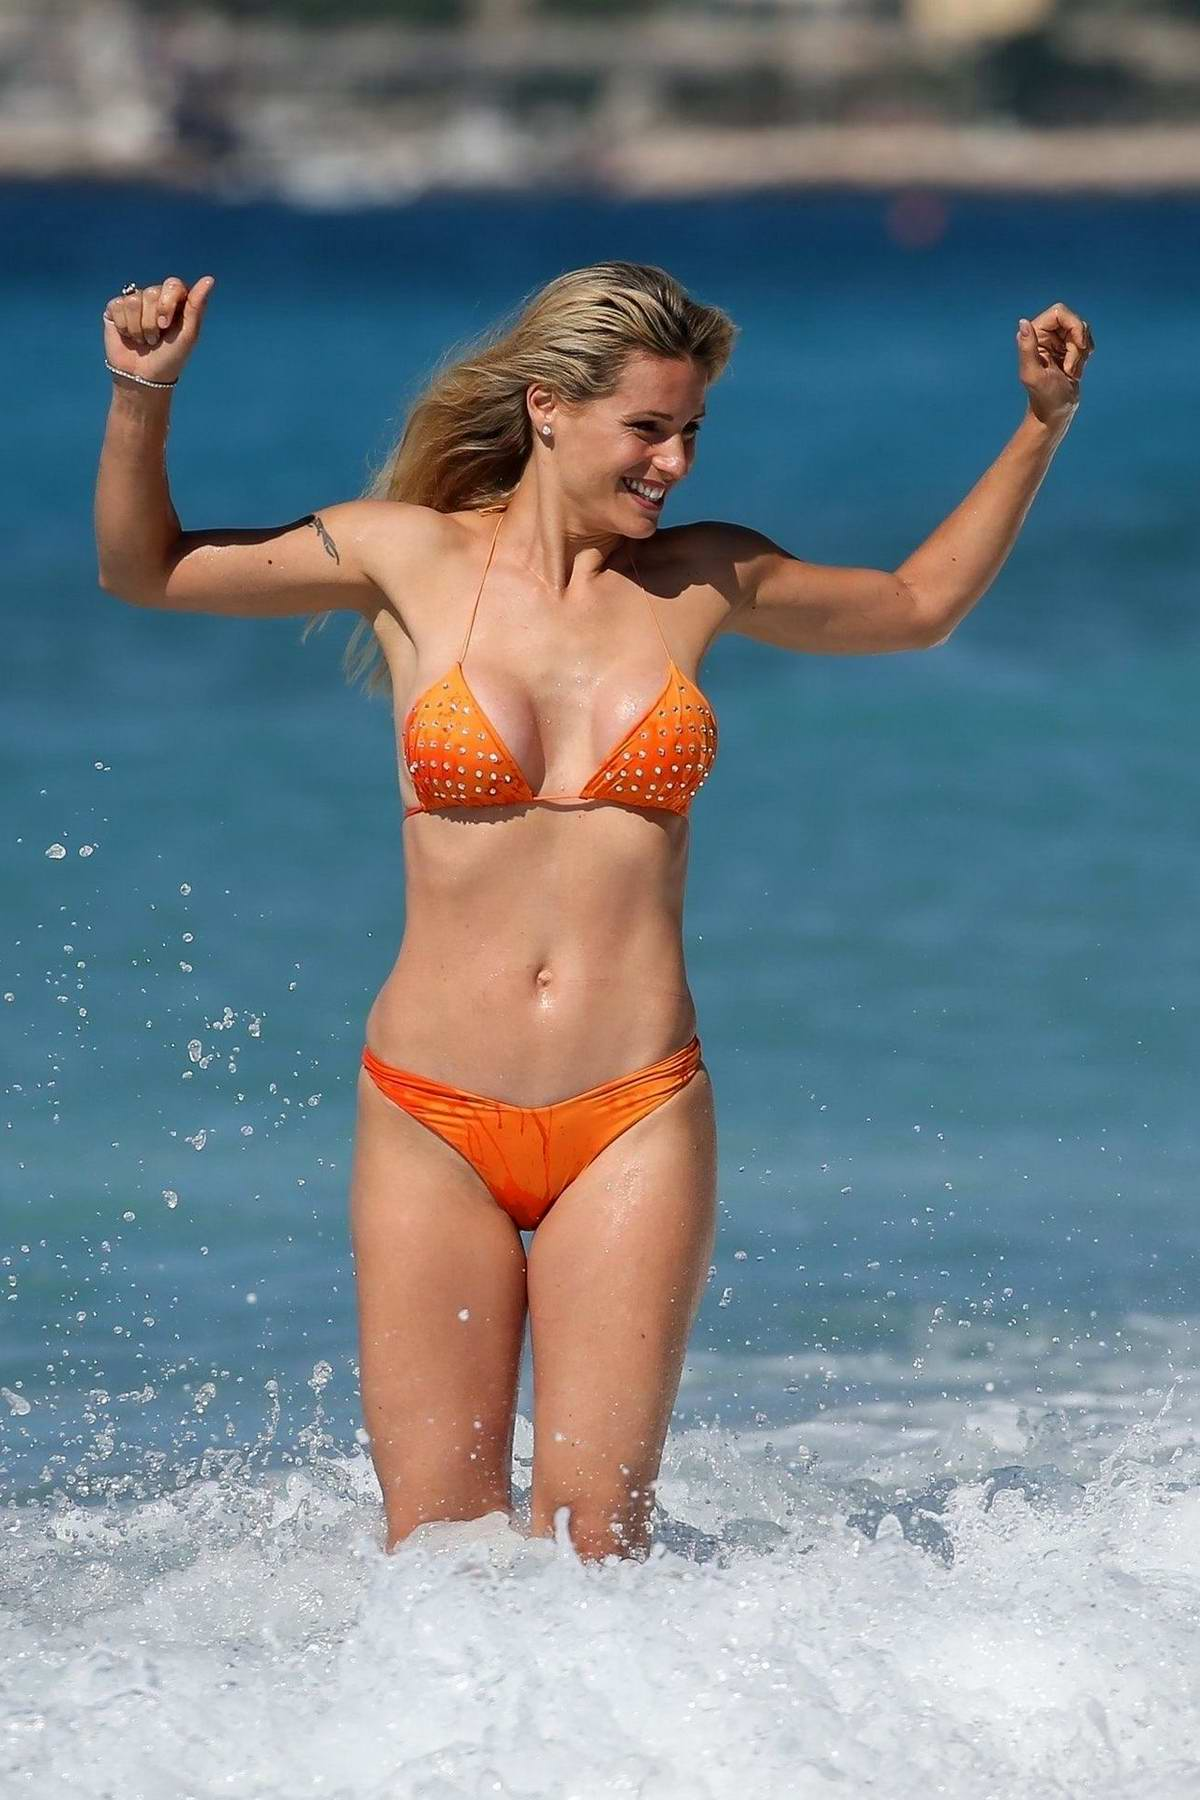 Michelle Hunziker sports an orange bikini during a beach day in Varigotti, Italy